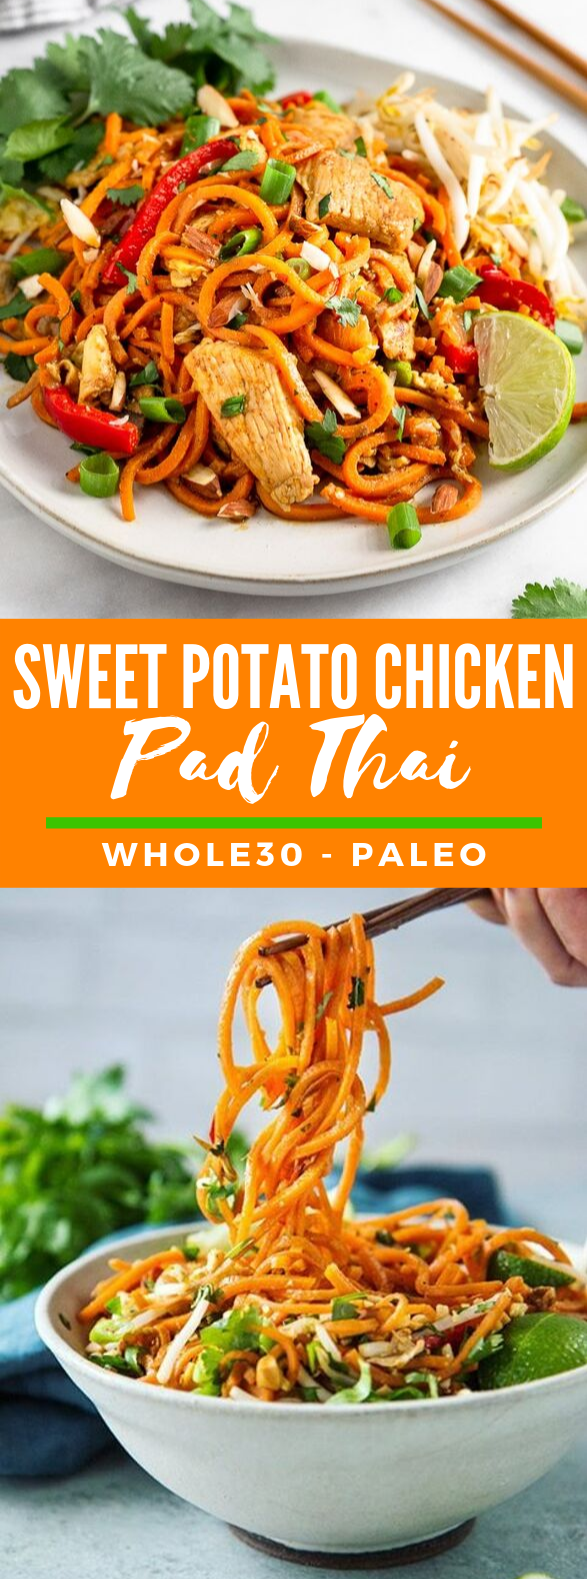 Sweet Potato Chicken Pad Thai Recipe (Paleo - Whole30) #healthyrecipe #glutenfree #paleo #chicken #chickenrecipe